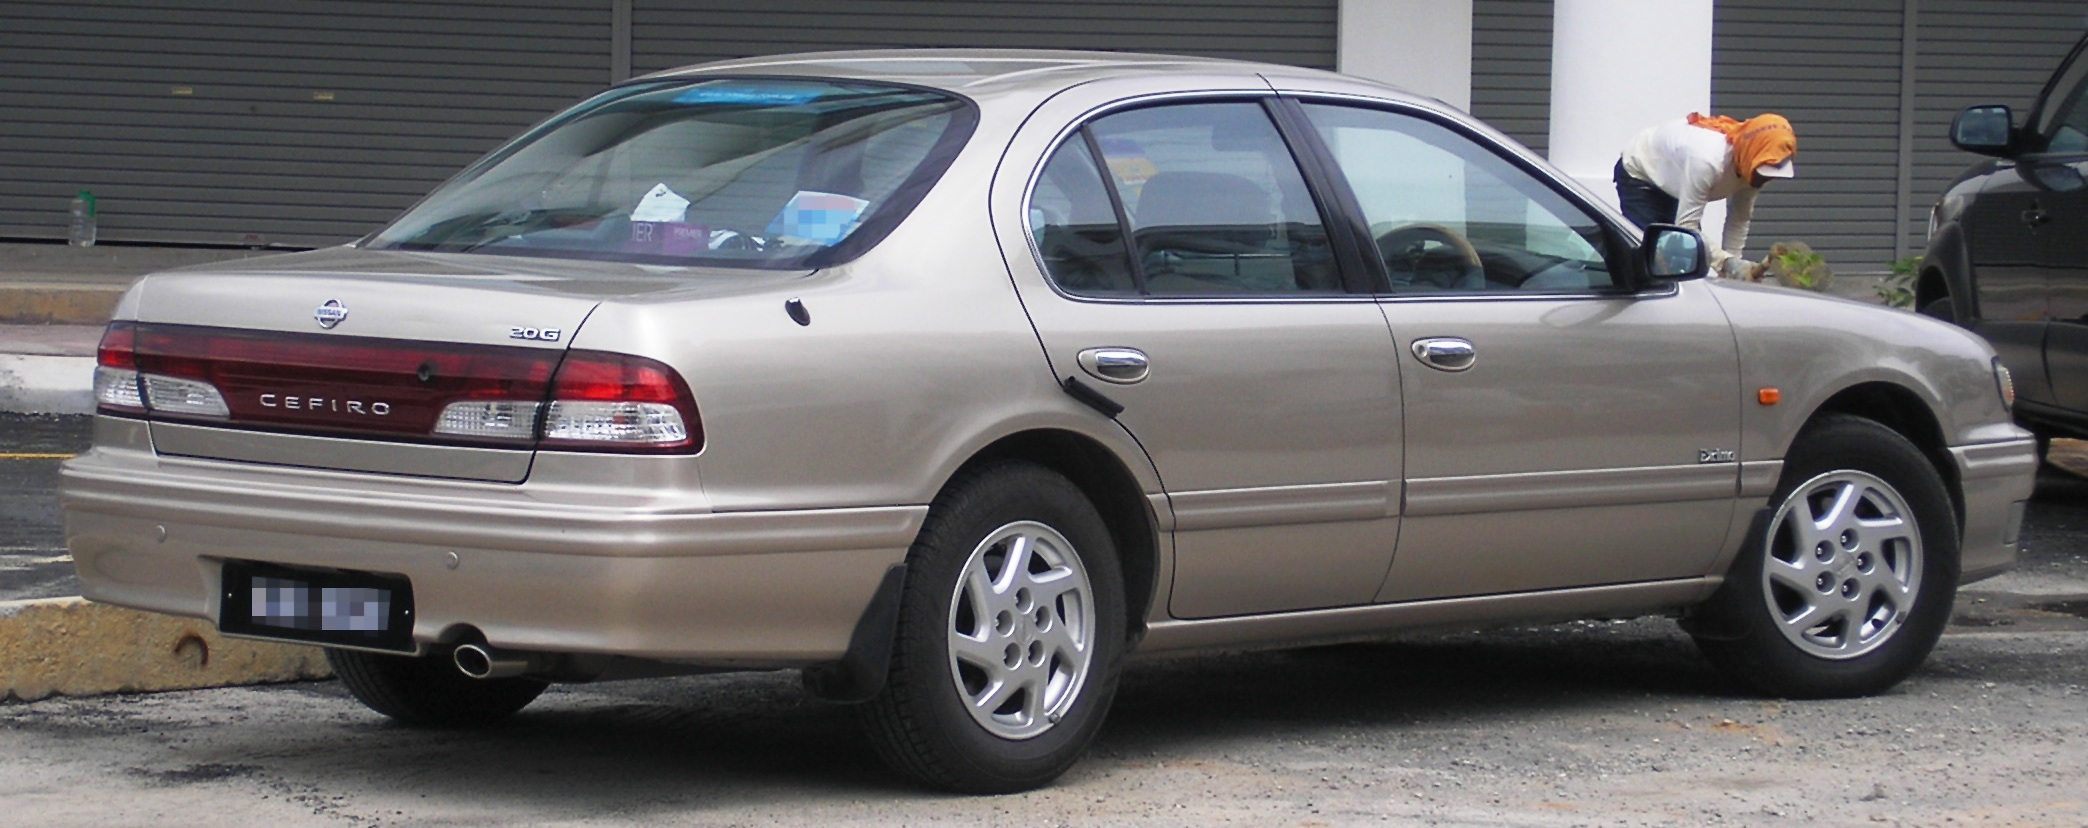 File Nissan Cefiro Second Generation First Facelift